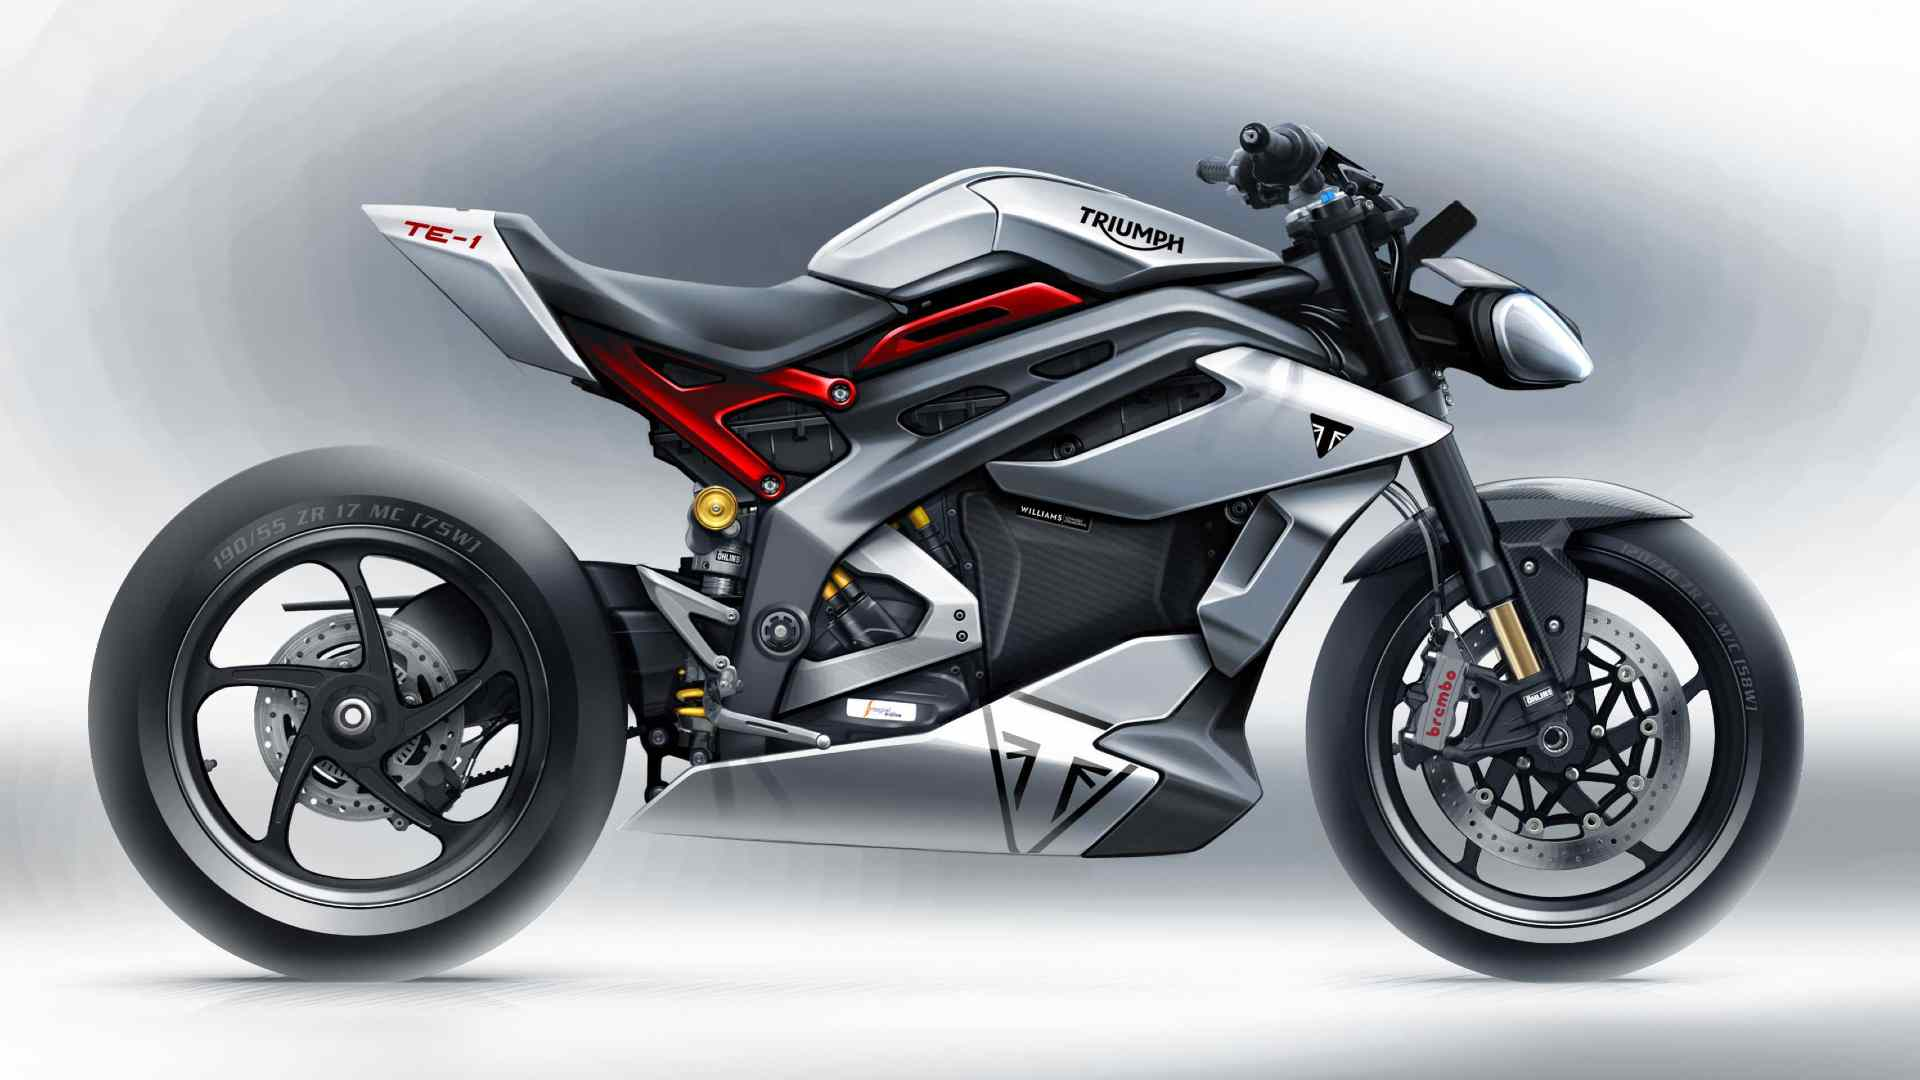 Triumph Project TE-1 electric superbike previewed, electric powertrain revealed- Technology News, FP